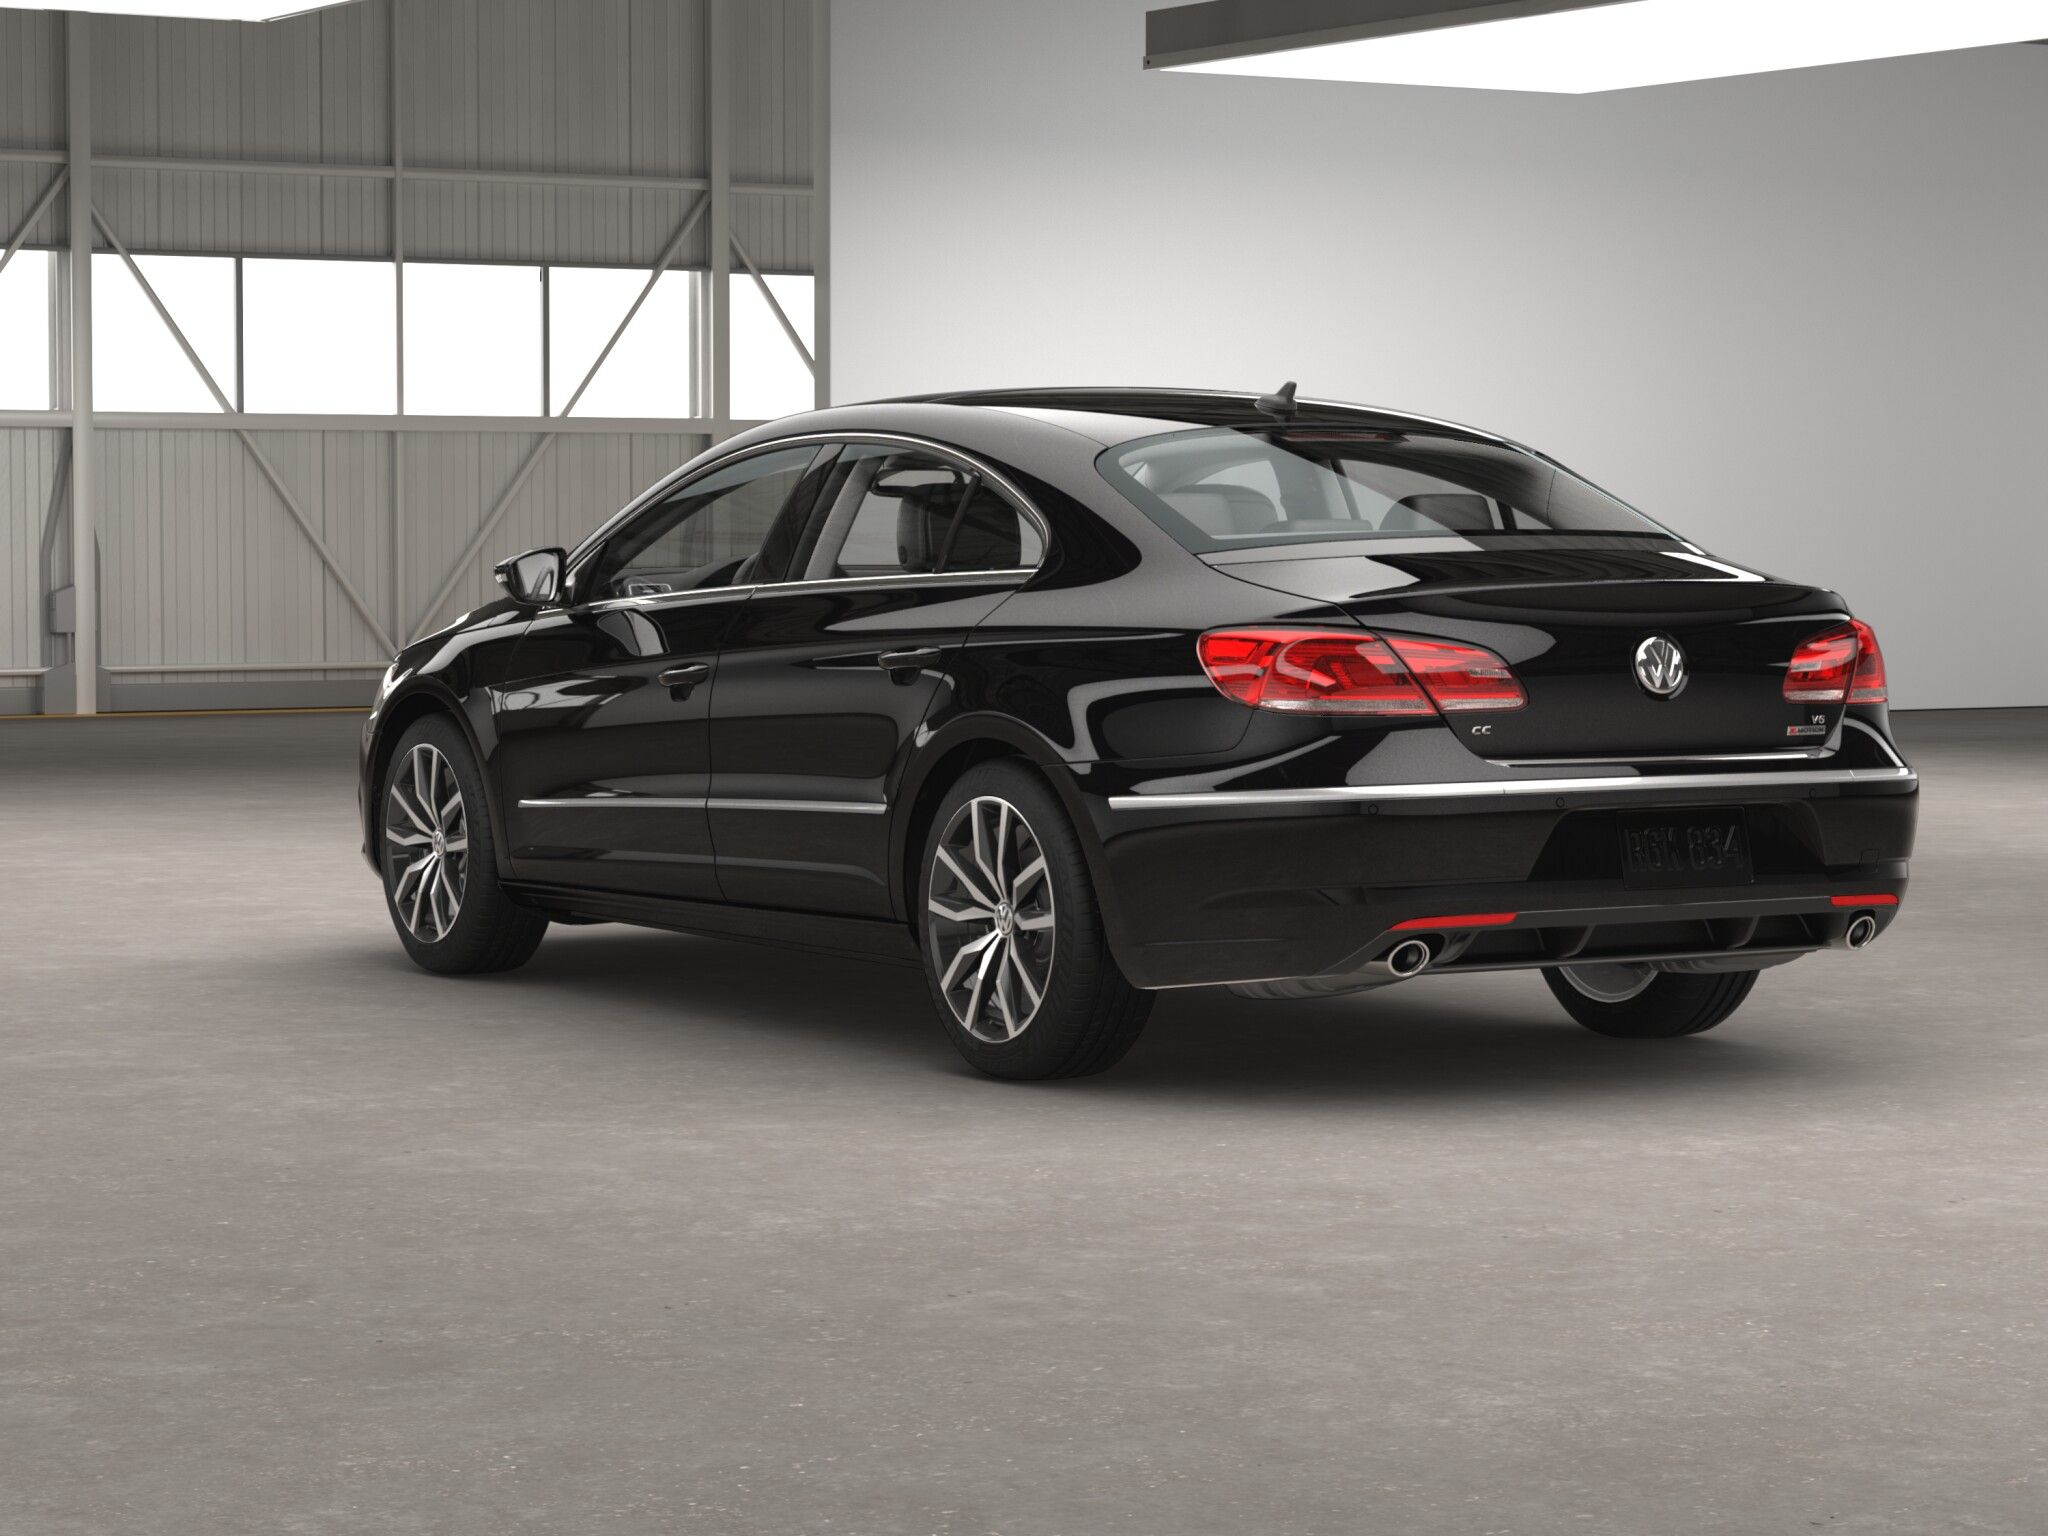 Check Out The Volkswagen I Just Built On Vw Com Vw Cc Volkswagen Models Volkswagen